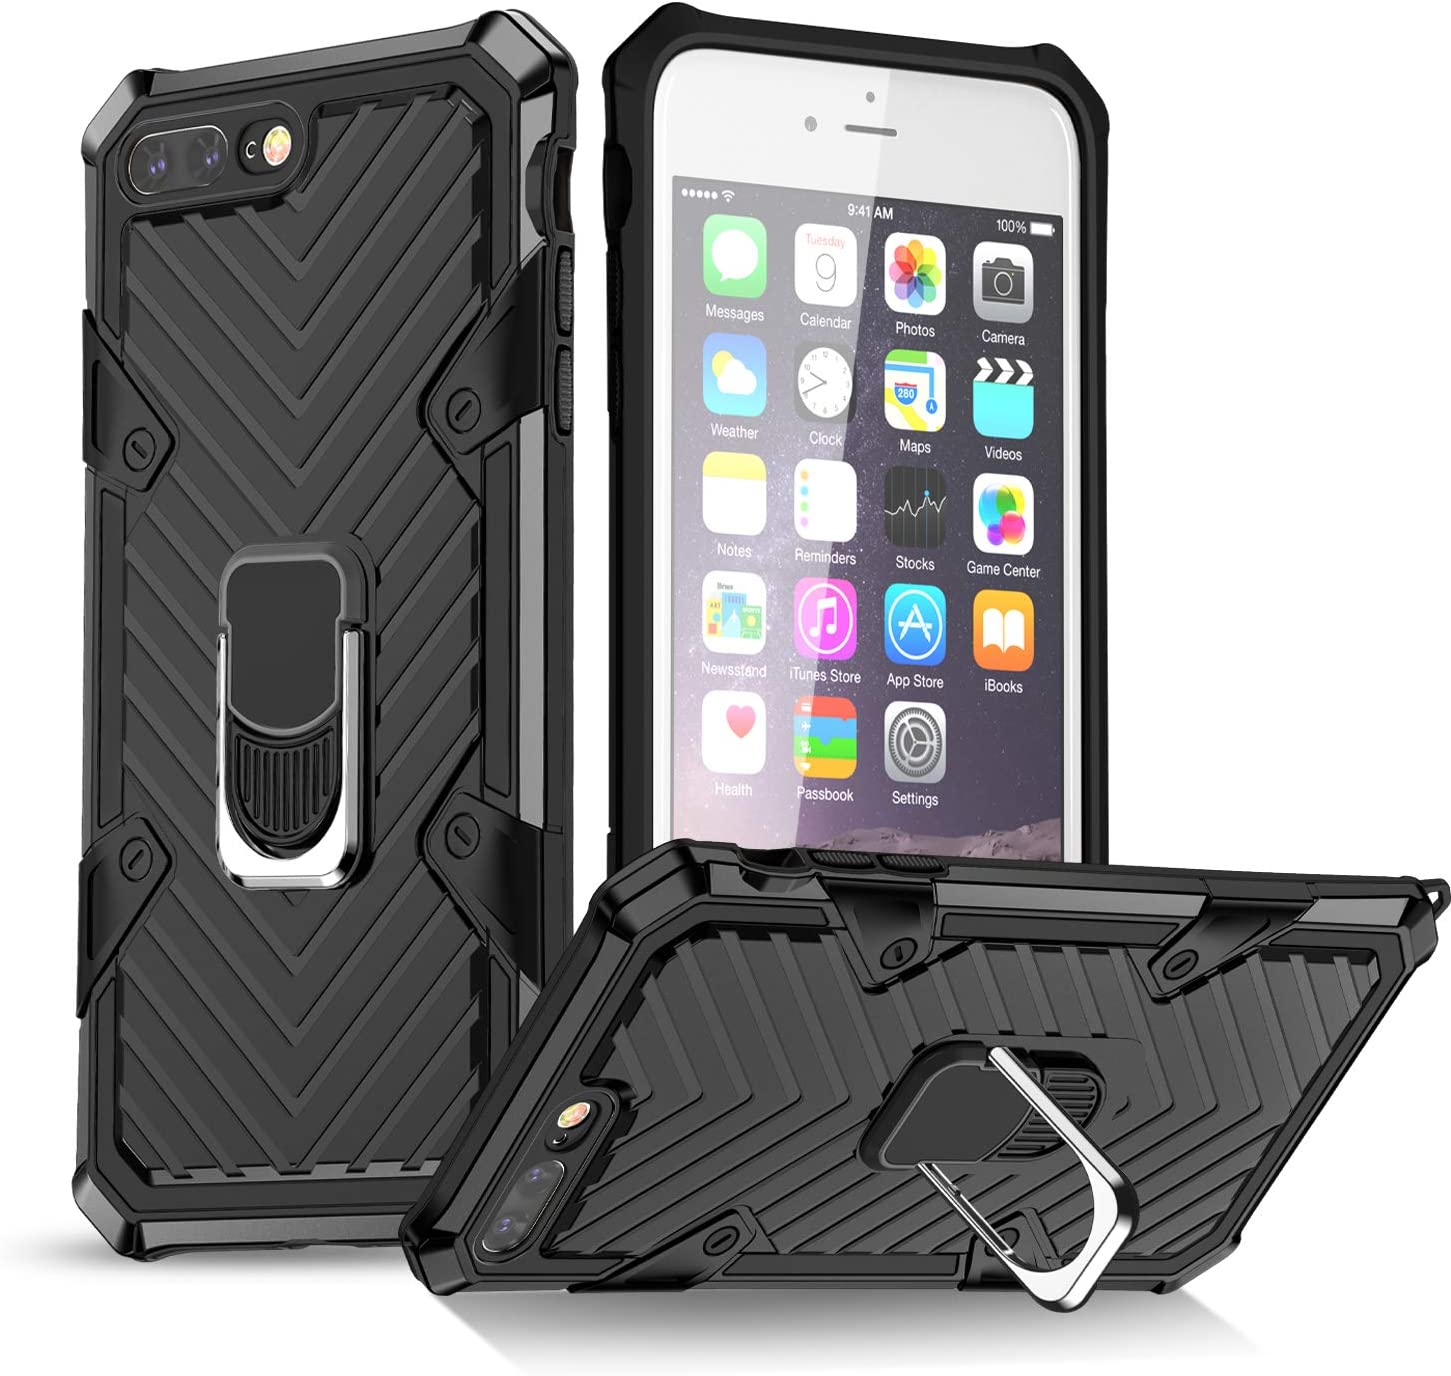 iPhone 7 Plus Case | iPhone 8 Plus Case | Kickstand | [ Military Grade ] 15ft. SGS Drop Tested Protective Case | Compatible for Apple iPhone 8 Plus/iPhone 7 Plus-Black